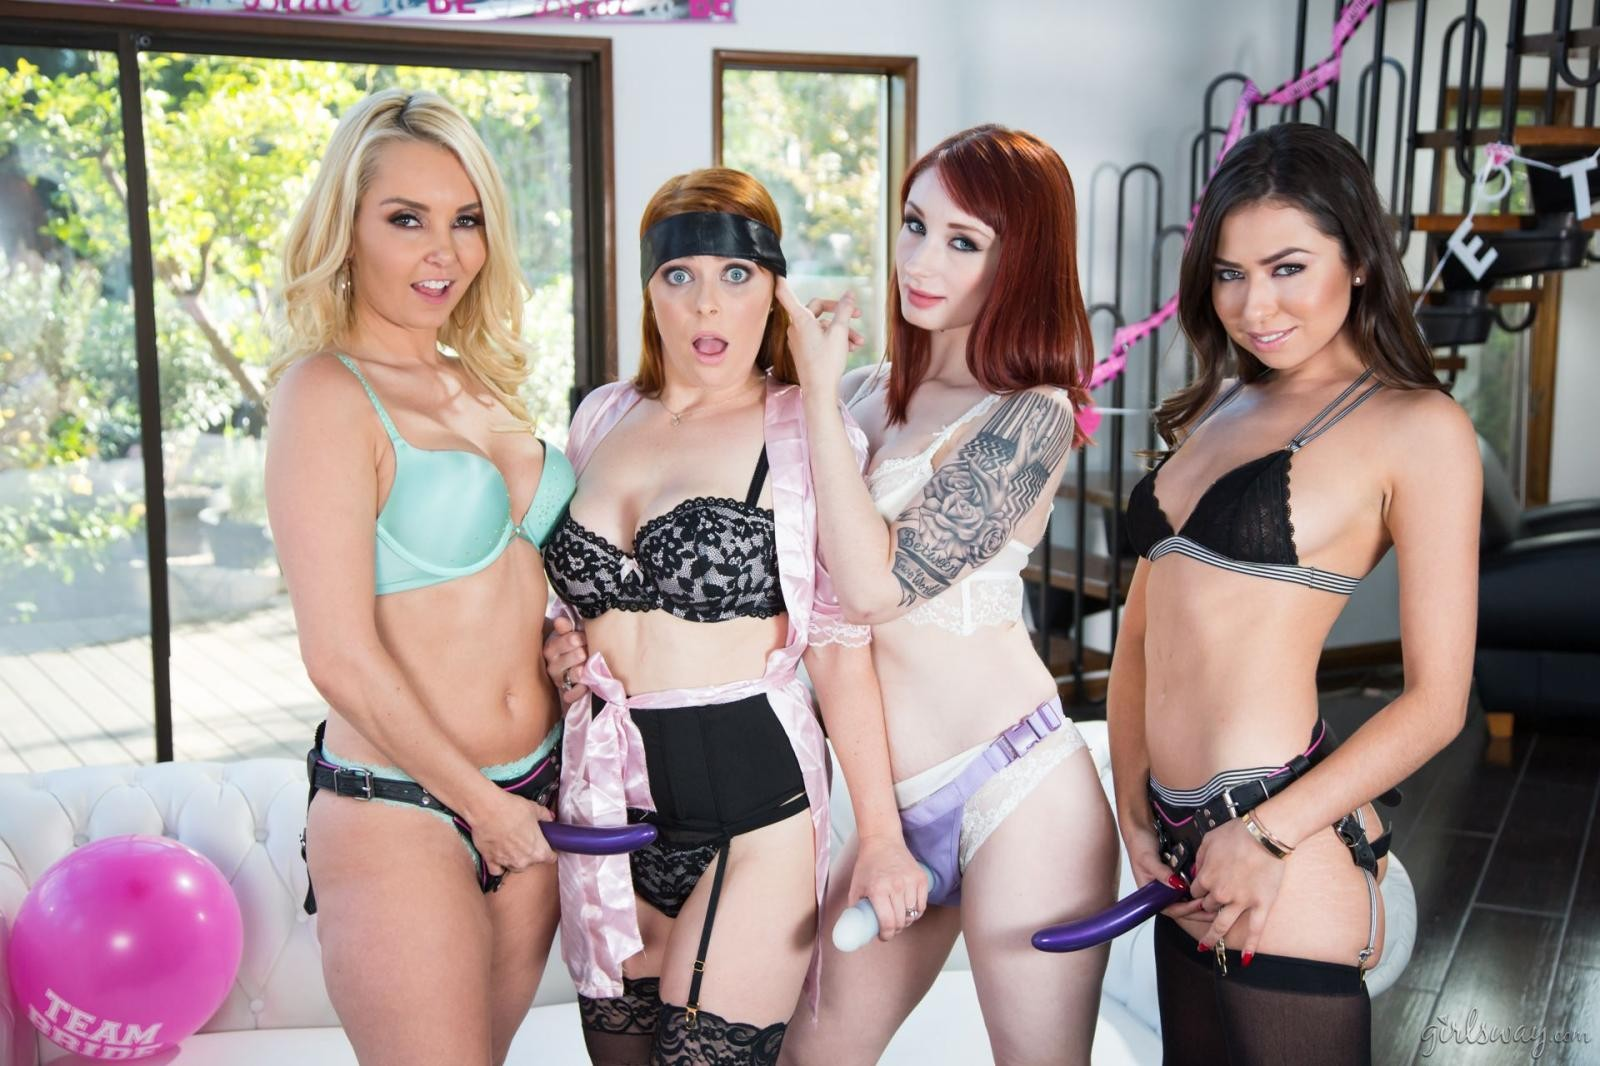 Violet Monroe: Strap-On Stories: Gangbang Bachelorette - 2